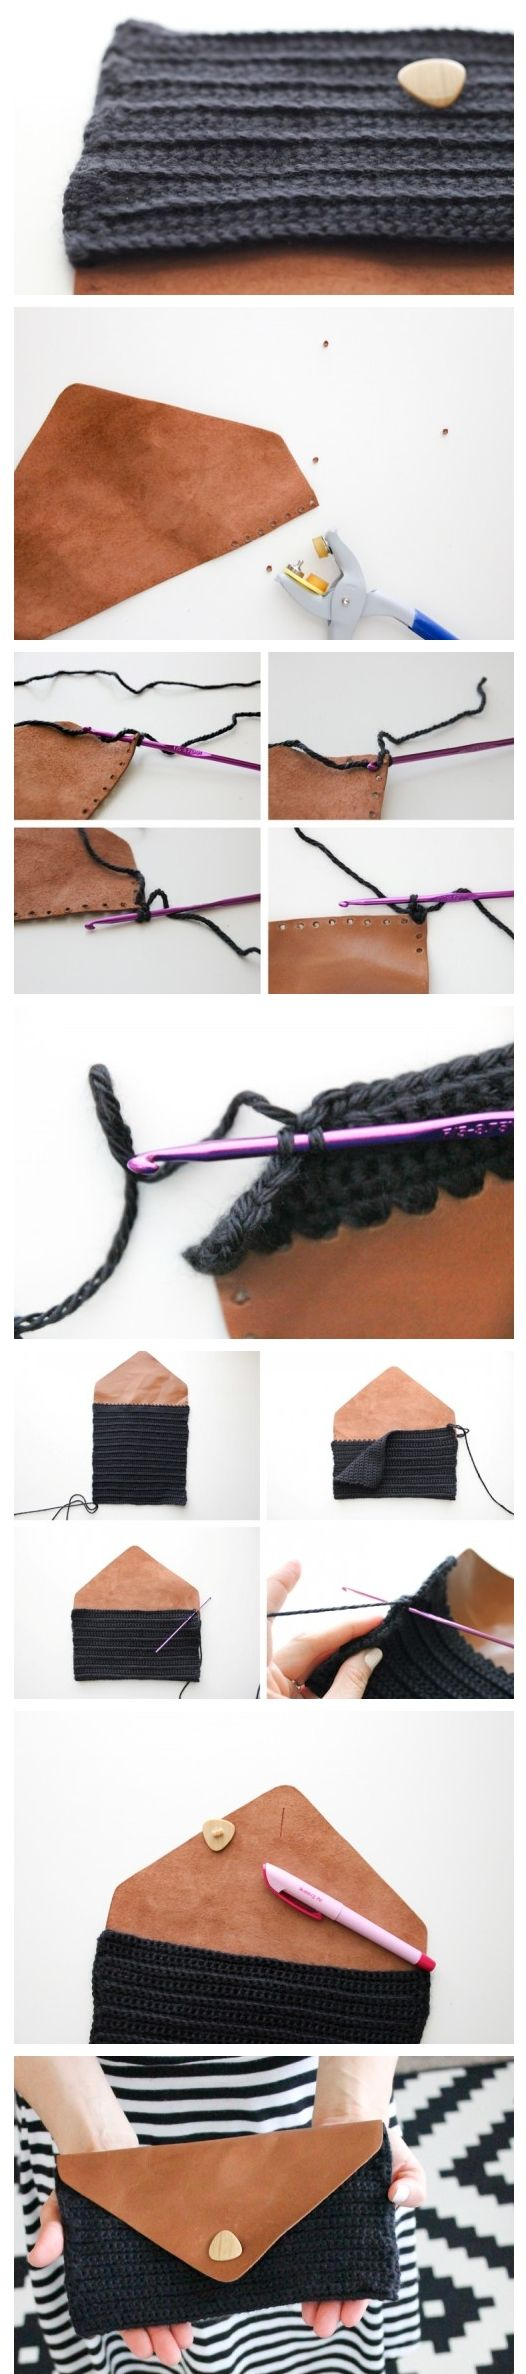 Cool DIY Crocheted Leather Flap Clutch ✿⊱╮Teresa Restegui http://www.pinterest.com/teretegui/✿⊱╮